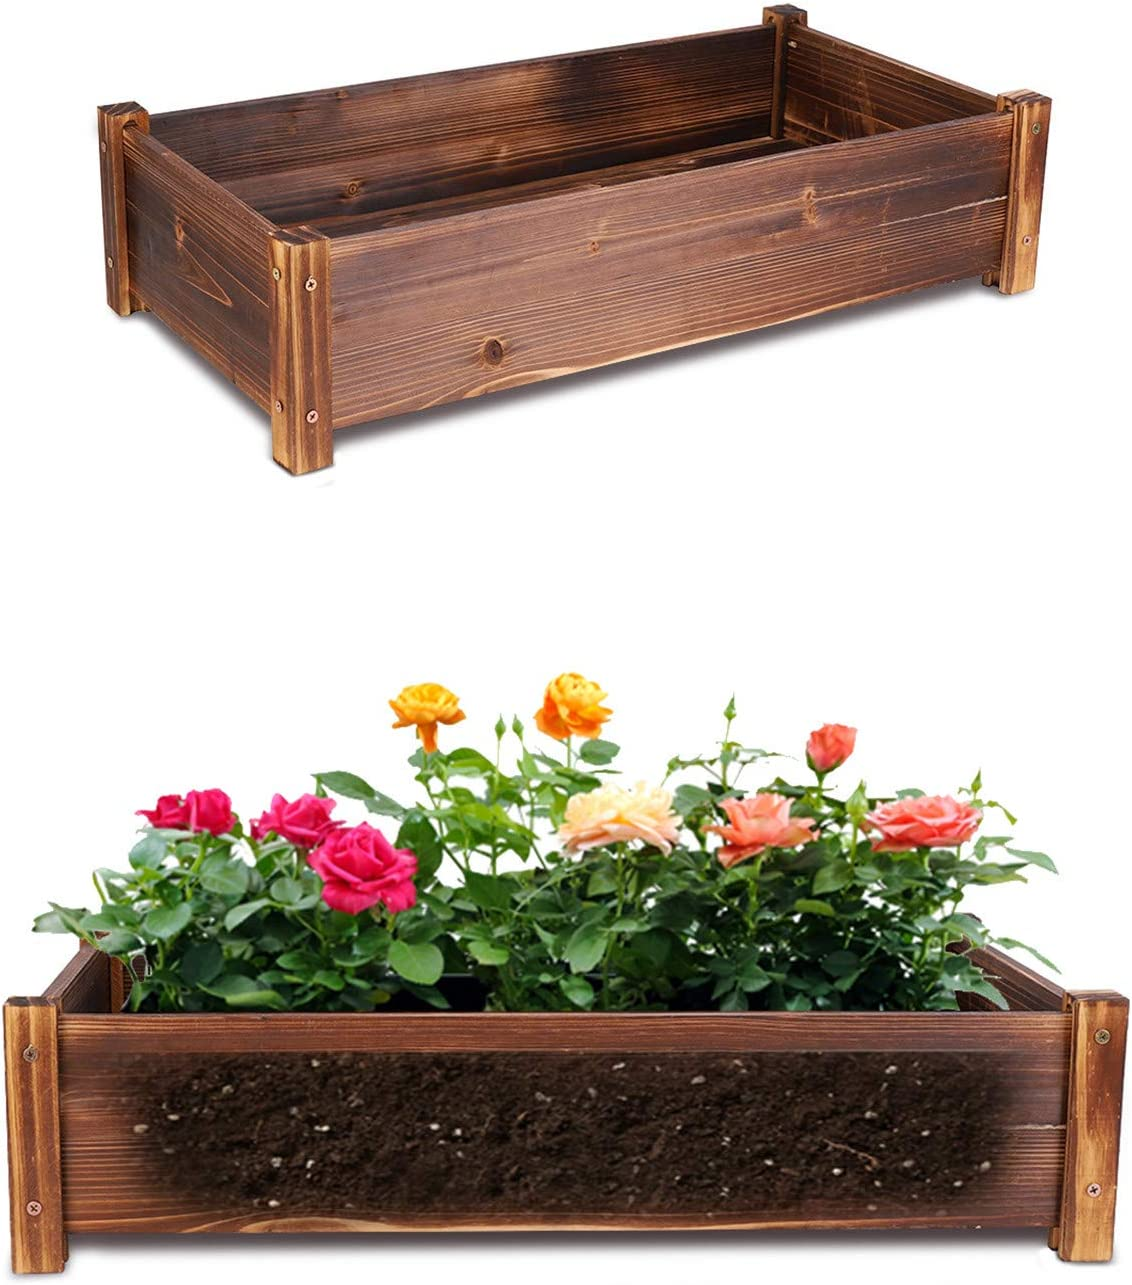 unho Wooden Planter Bed Small Plant Box Square Garden Planter for Home Garden Planting Vegetables Flower Plant Herb